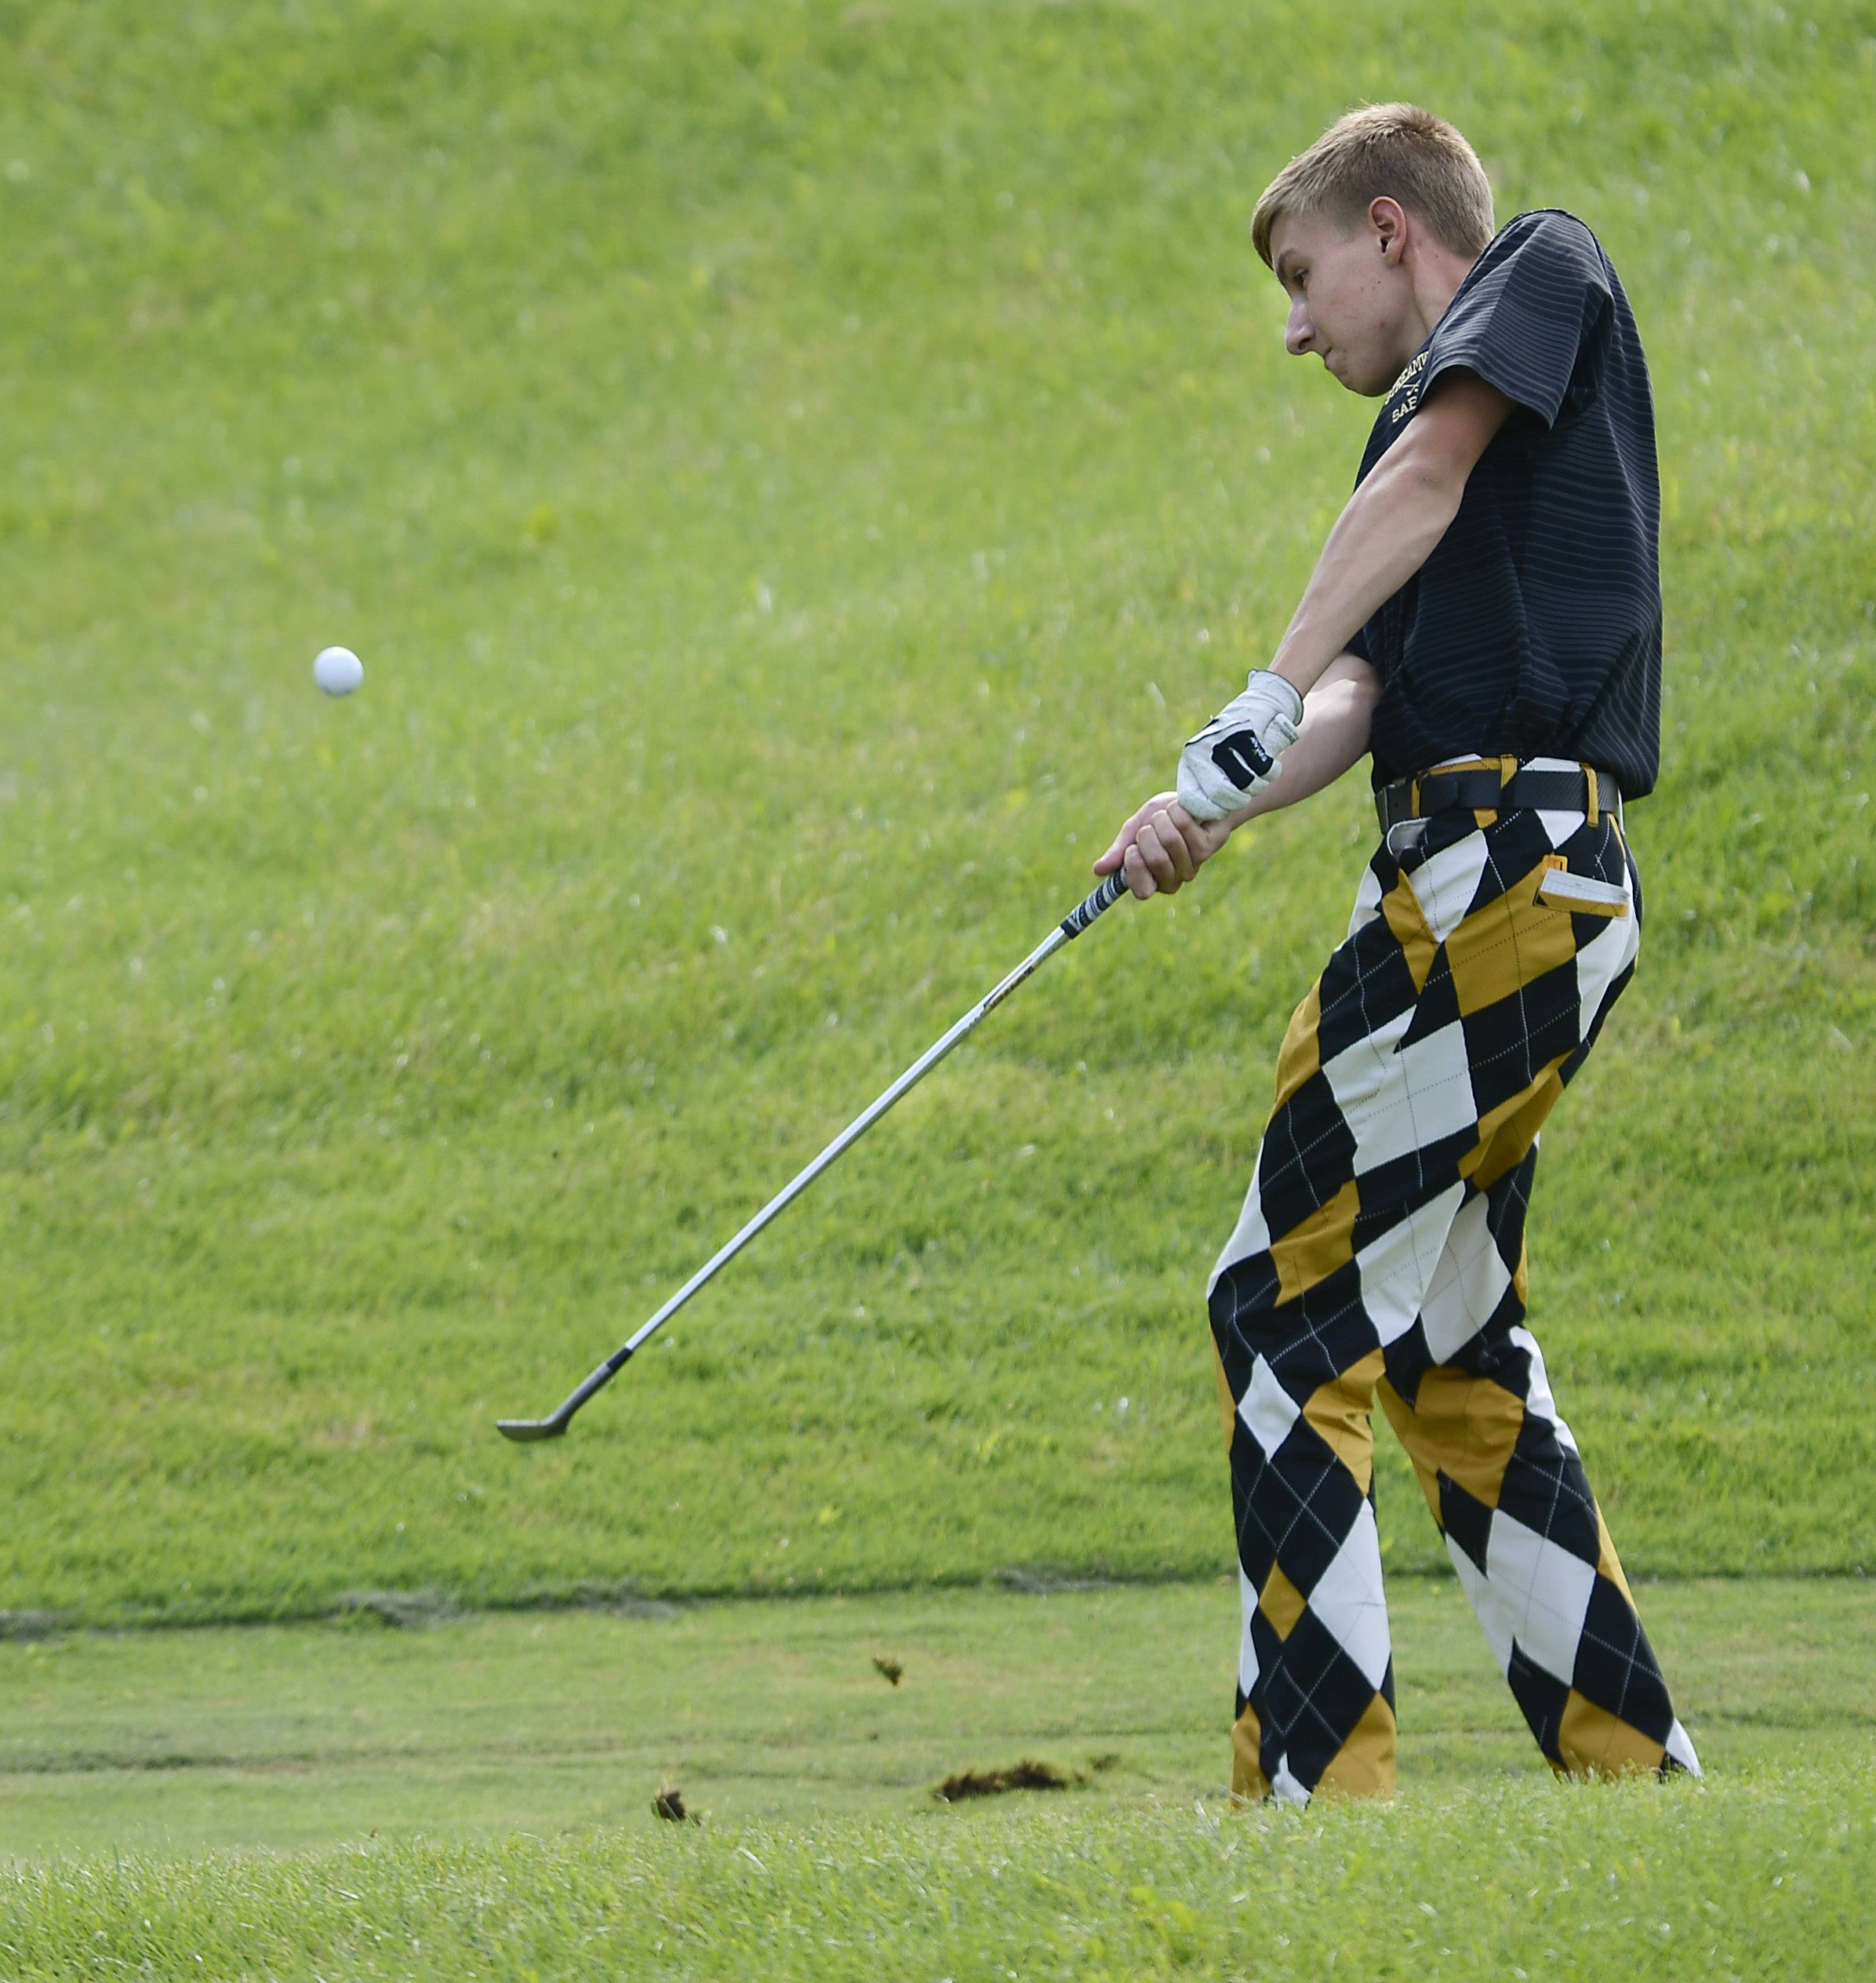 Streamwood's Chase Pantle chips Thursday at the Geneva boys golf invitational at Mill Creek Golf Club.